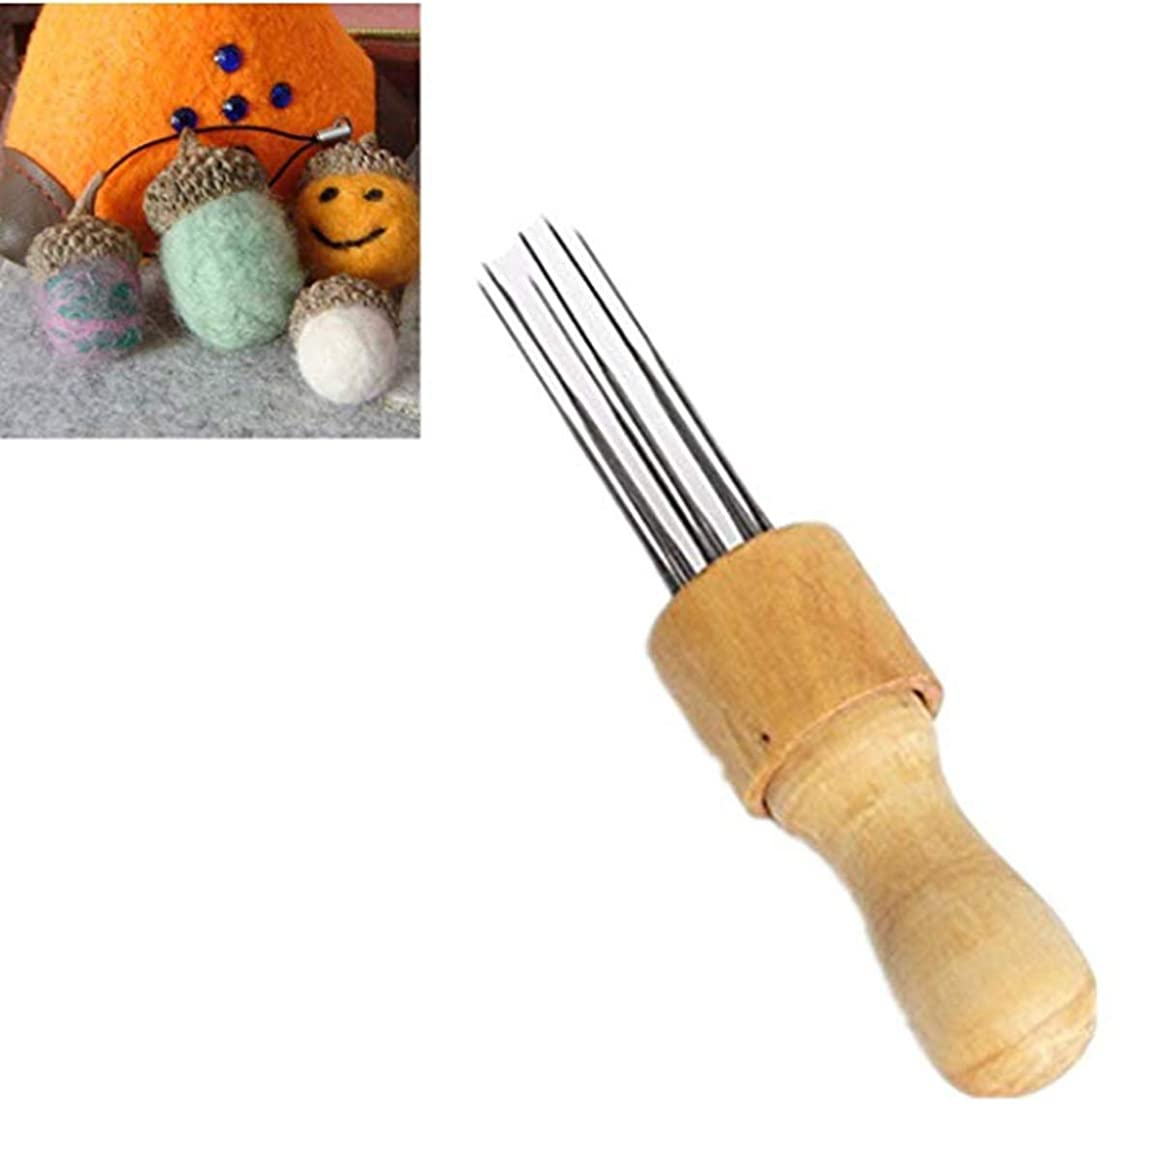 DW Needle Felting with Solid Wood Handle Clover Felt Stitch Punch Tool